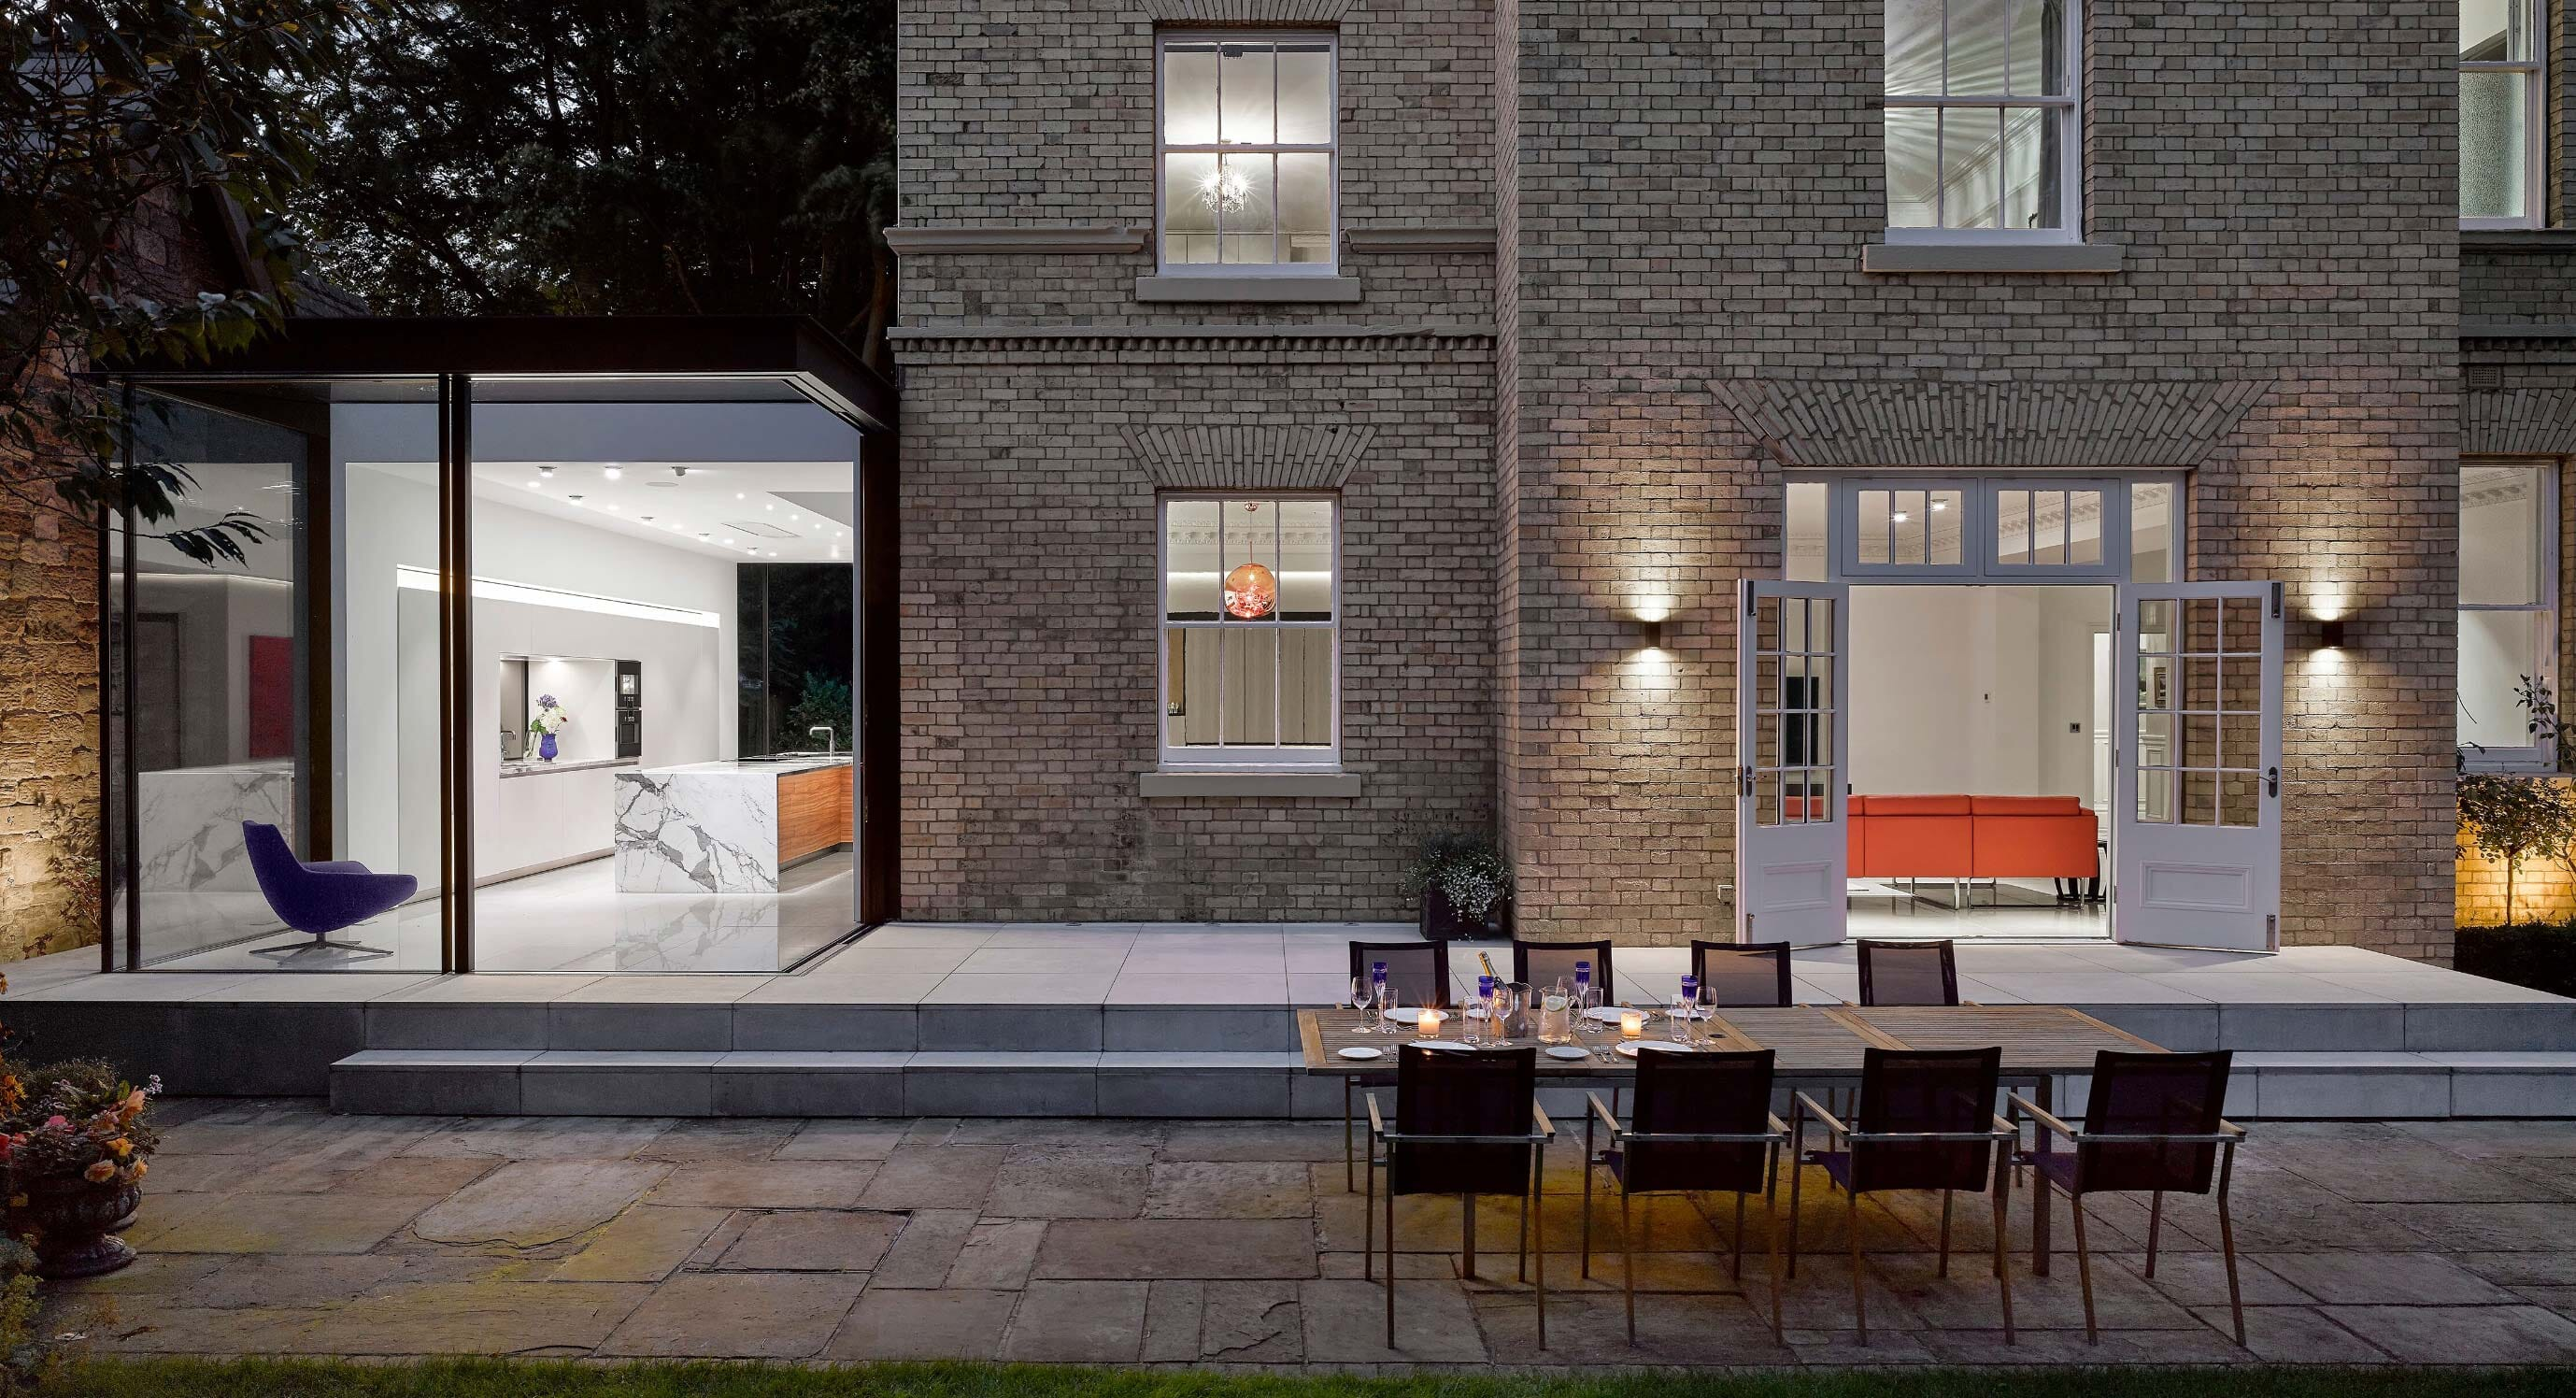 Scott Donald Architecture's Frog Castle Extension Blends Old And New